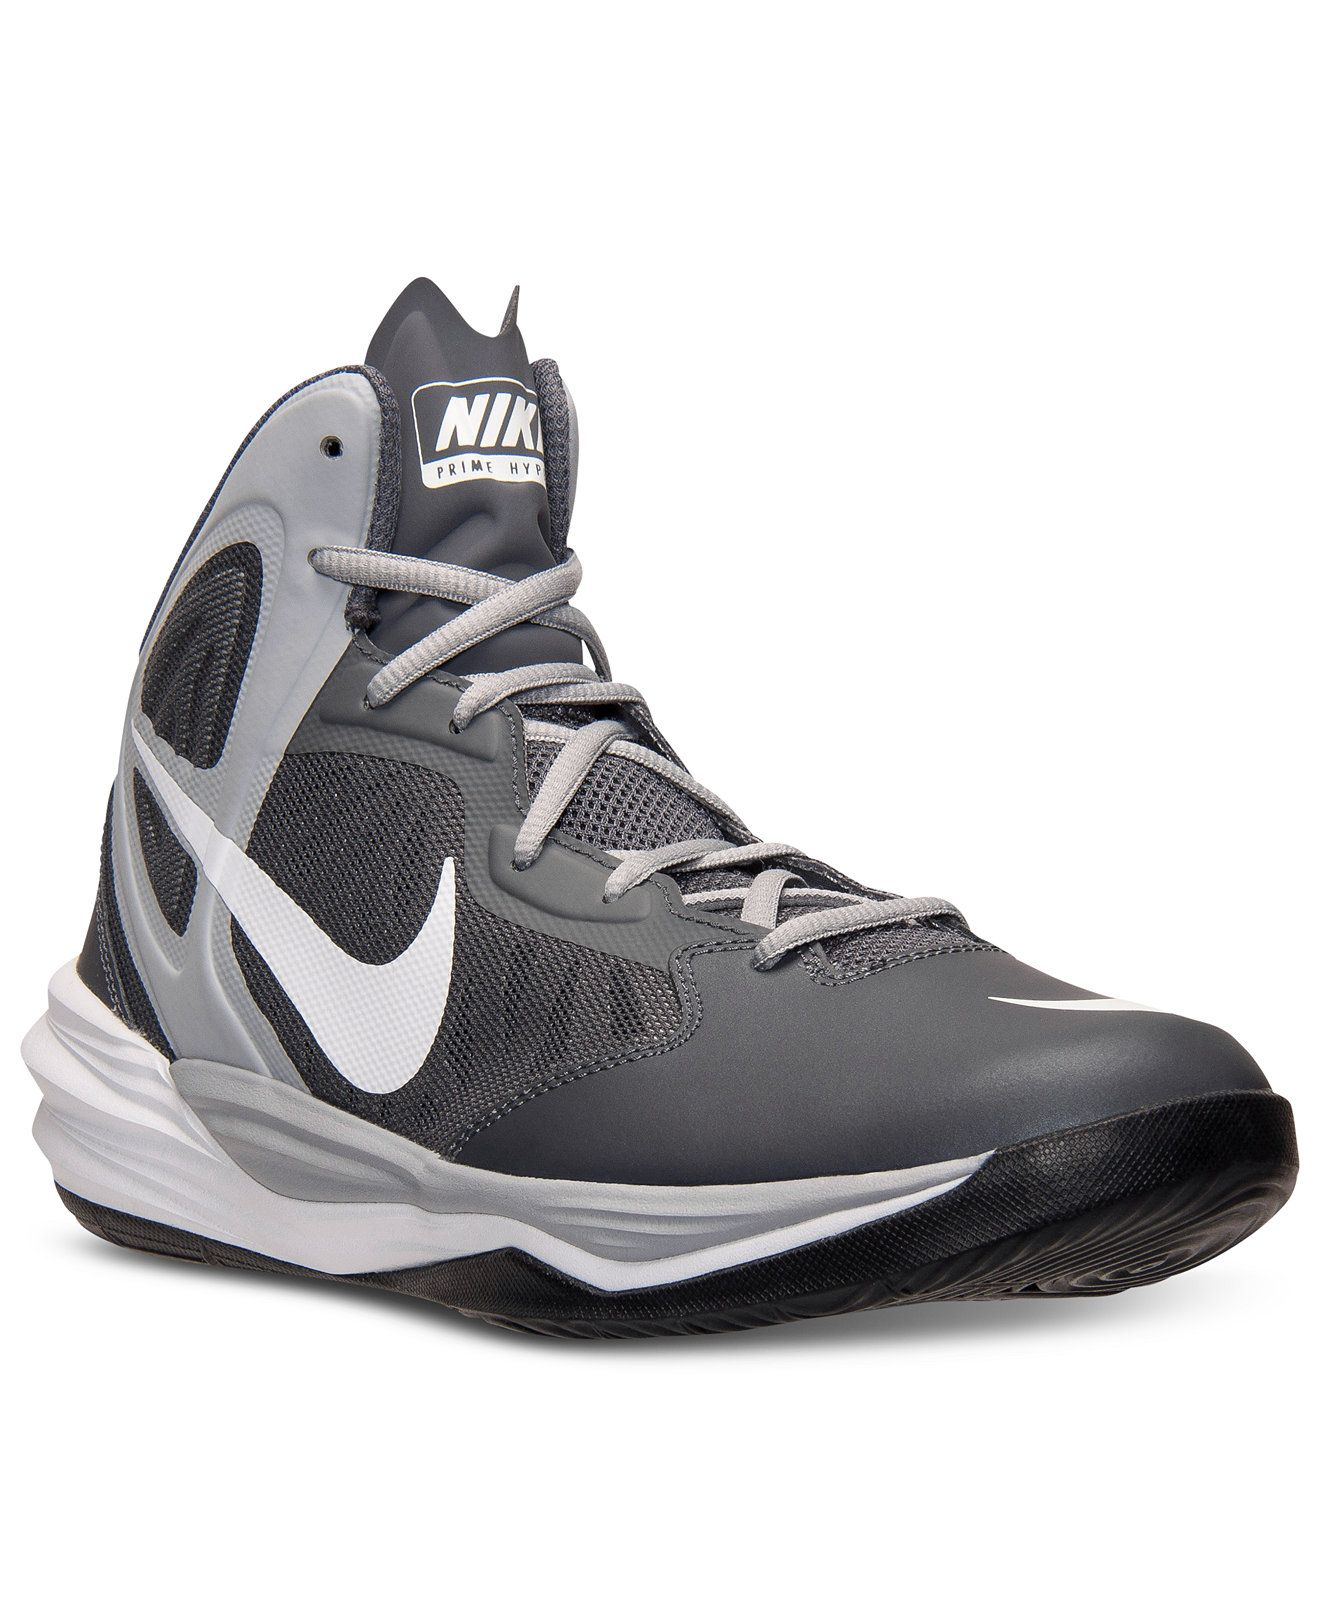 b607d2cf4405f The perfects kicks to help him step his game up — Nike Prime Hype DF  basketball sneakers